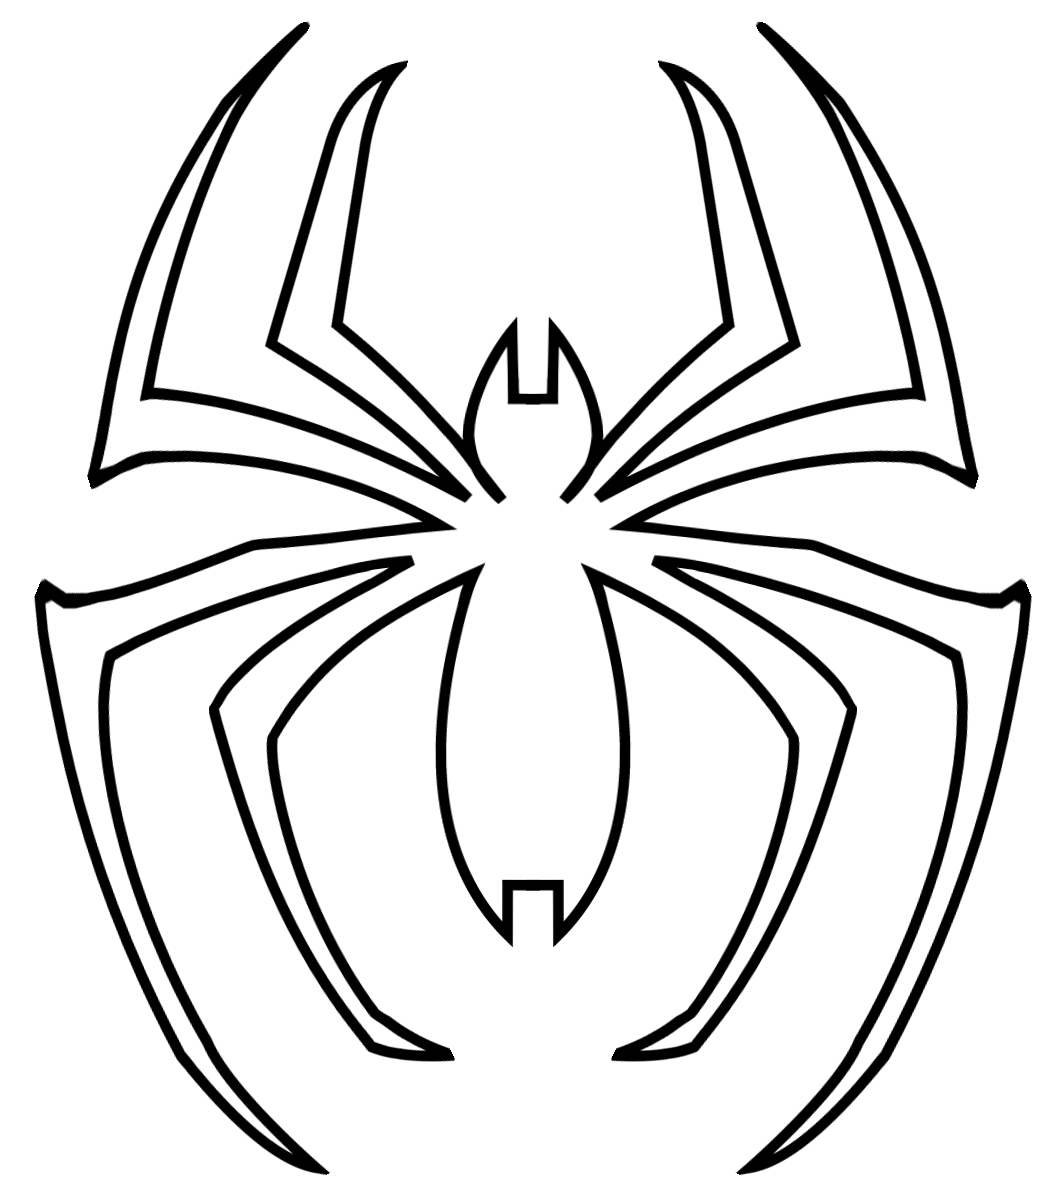 Spiders drawing logo. Spider man template comic